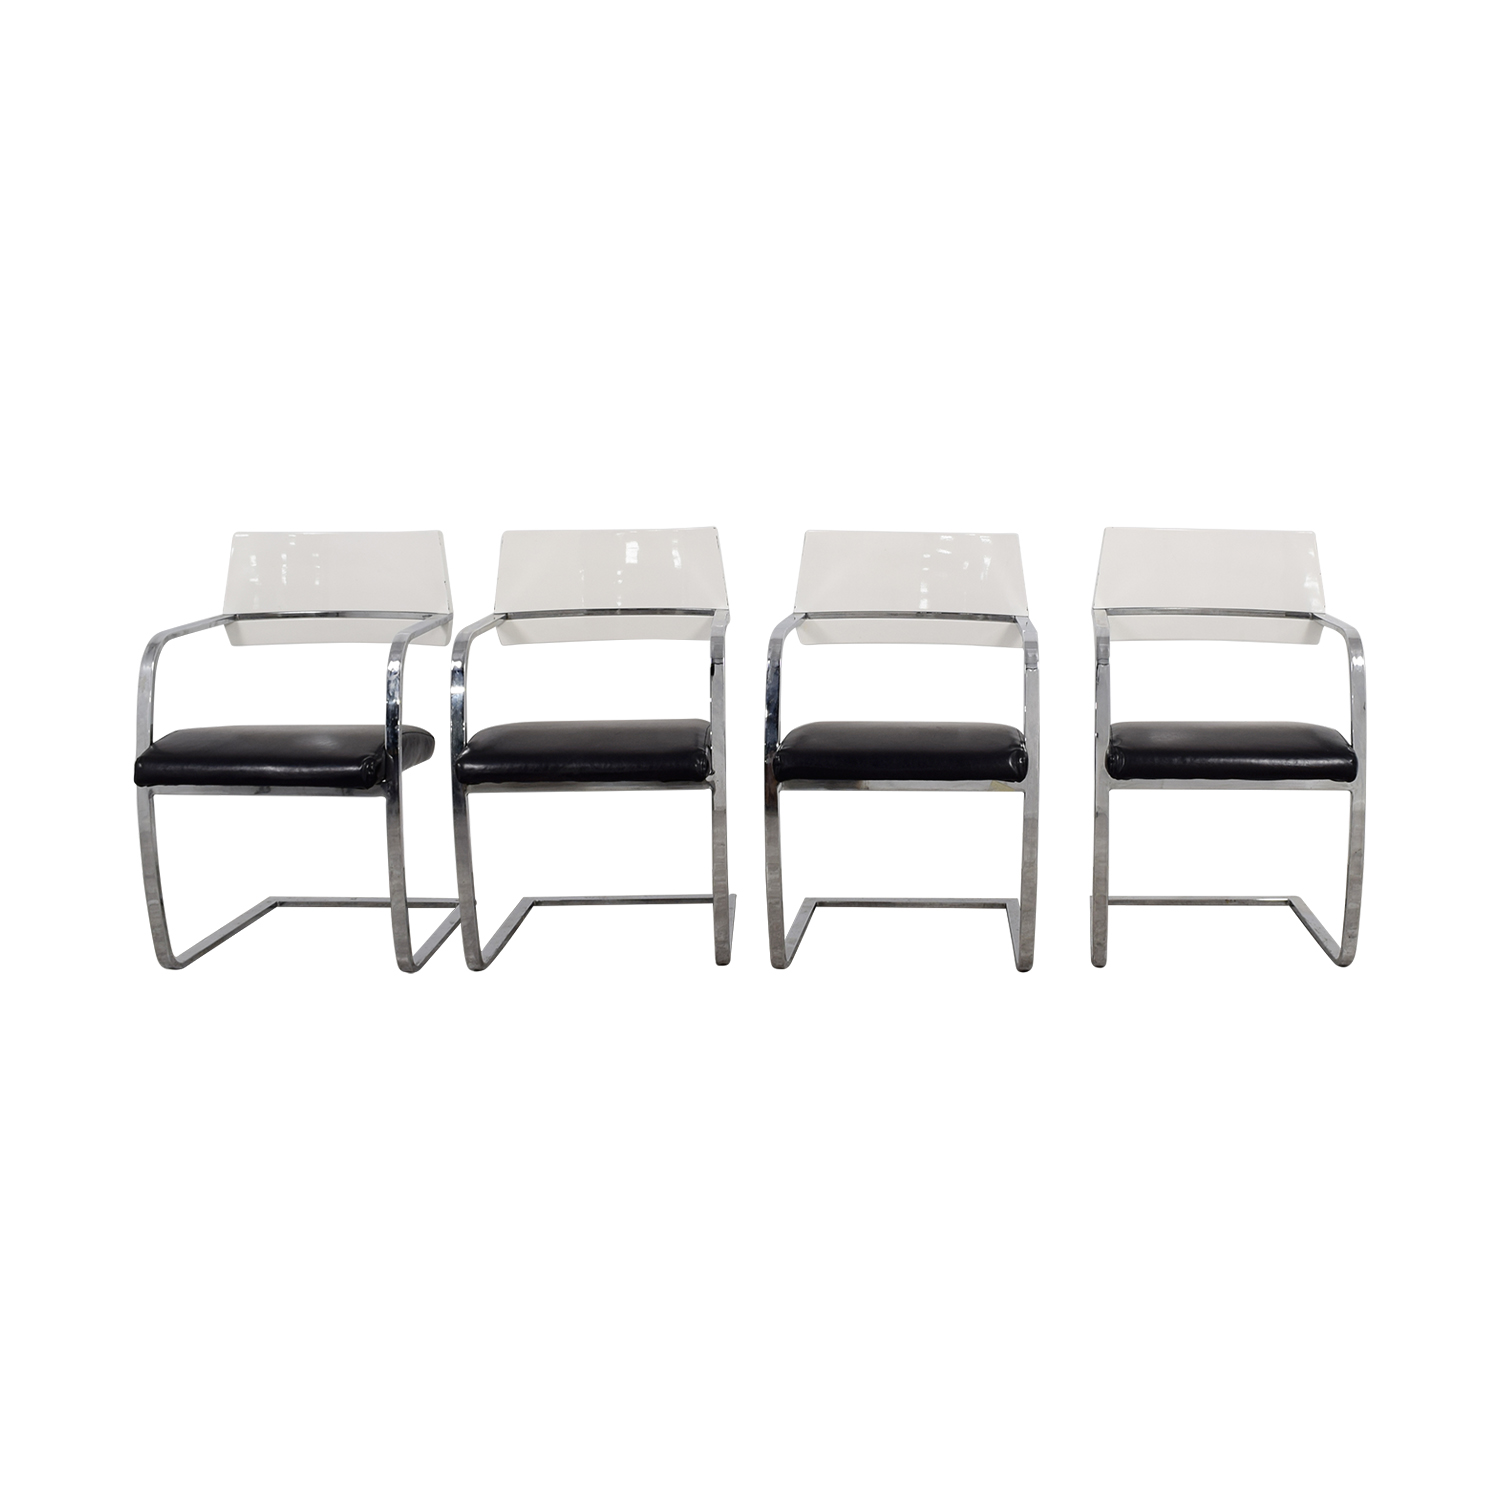 Italian Leather Black and White Chairs dimensions